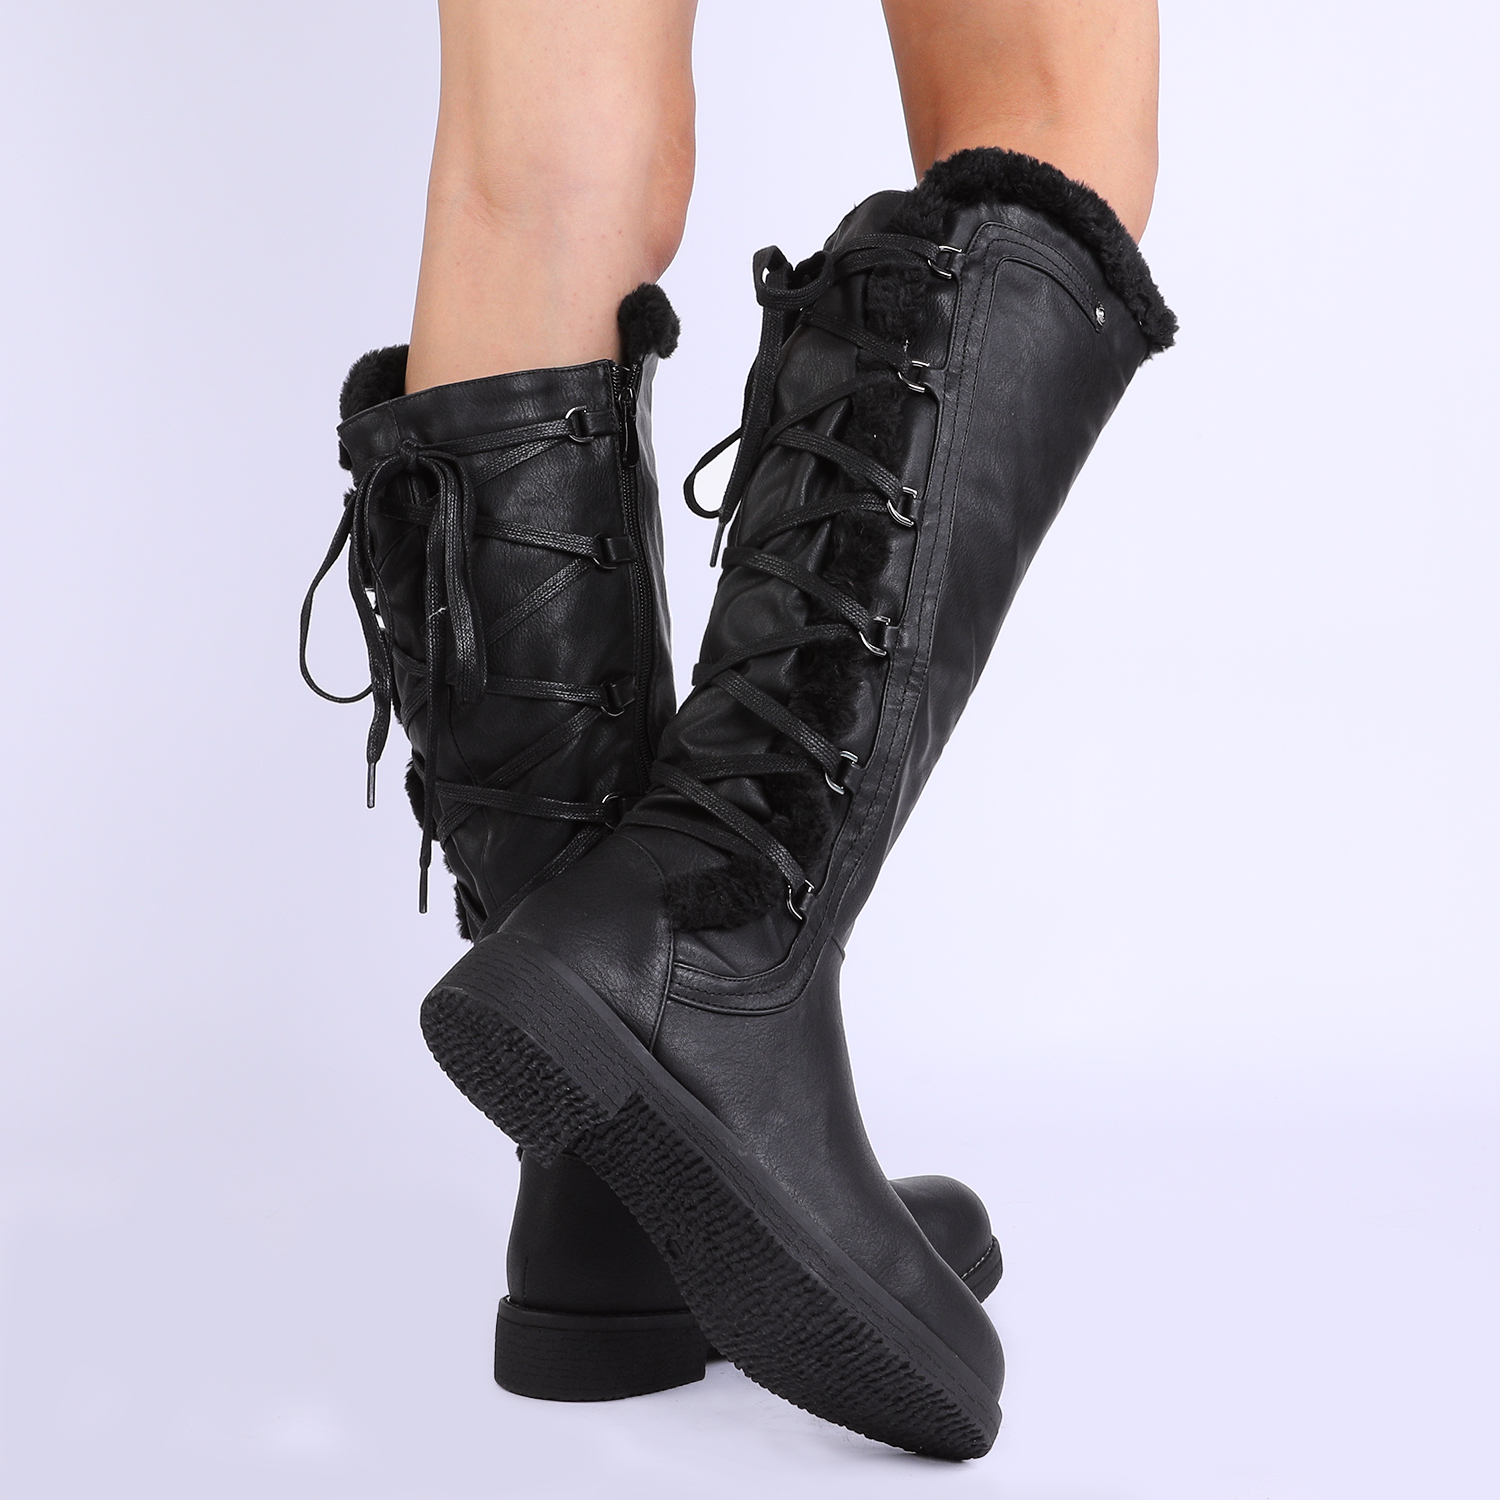 DREAM-PAIRS-Womens-Knee-High-Faux-Fur-Lined-Winter-Snow-Lace-Up-Zip-Combat-Boots thumbnail 9